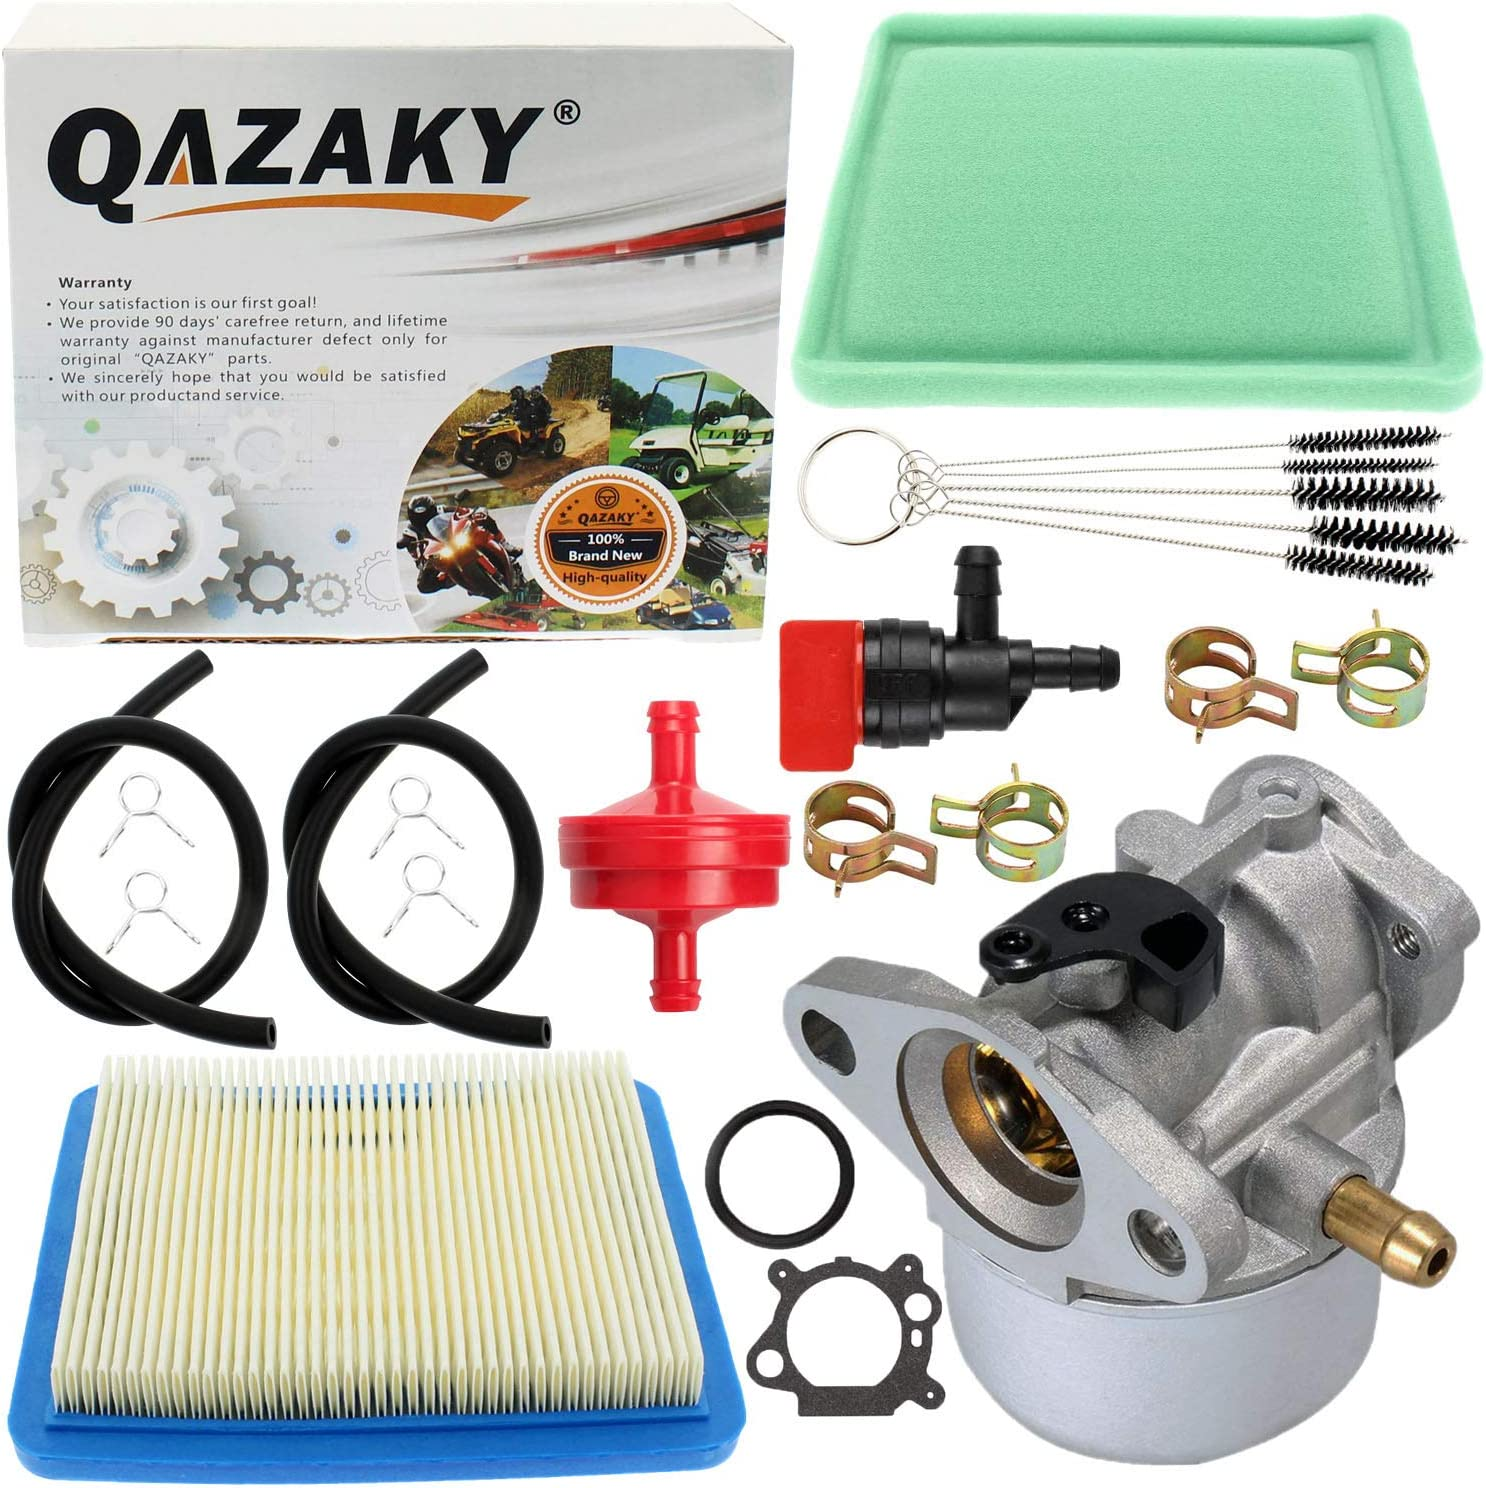 QAZAKY Carburetor Replacement for Briggs /& Stratton 497314 497347 497410 497586 498170 498254 498255 498966 499617 692648 693909 694202 698444 790821 799868 799872 14111 122000 4hp-7hp 6.5hp 6.75hp